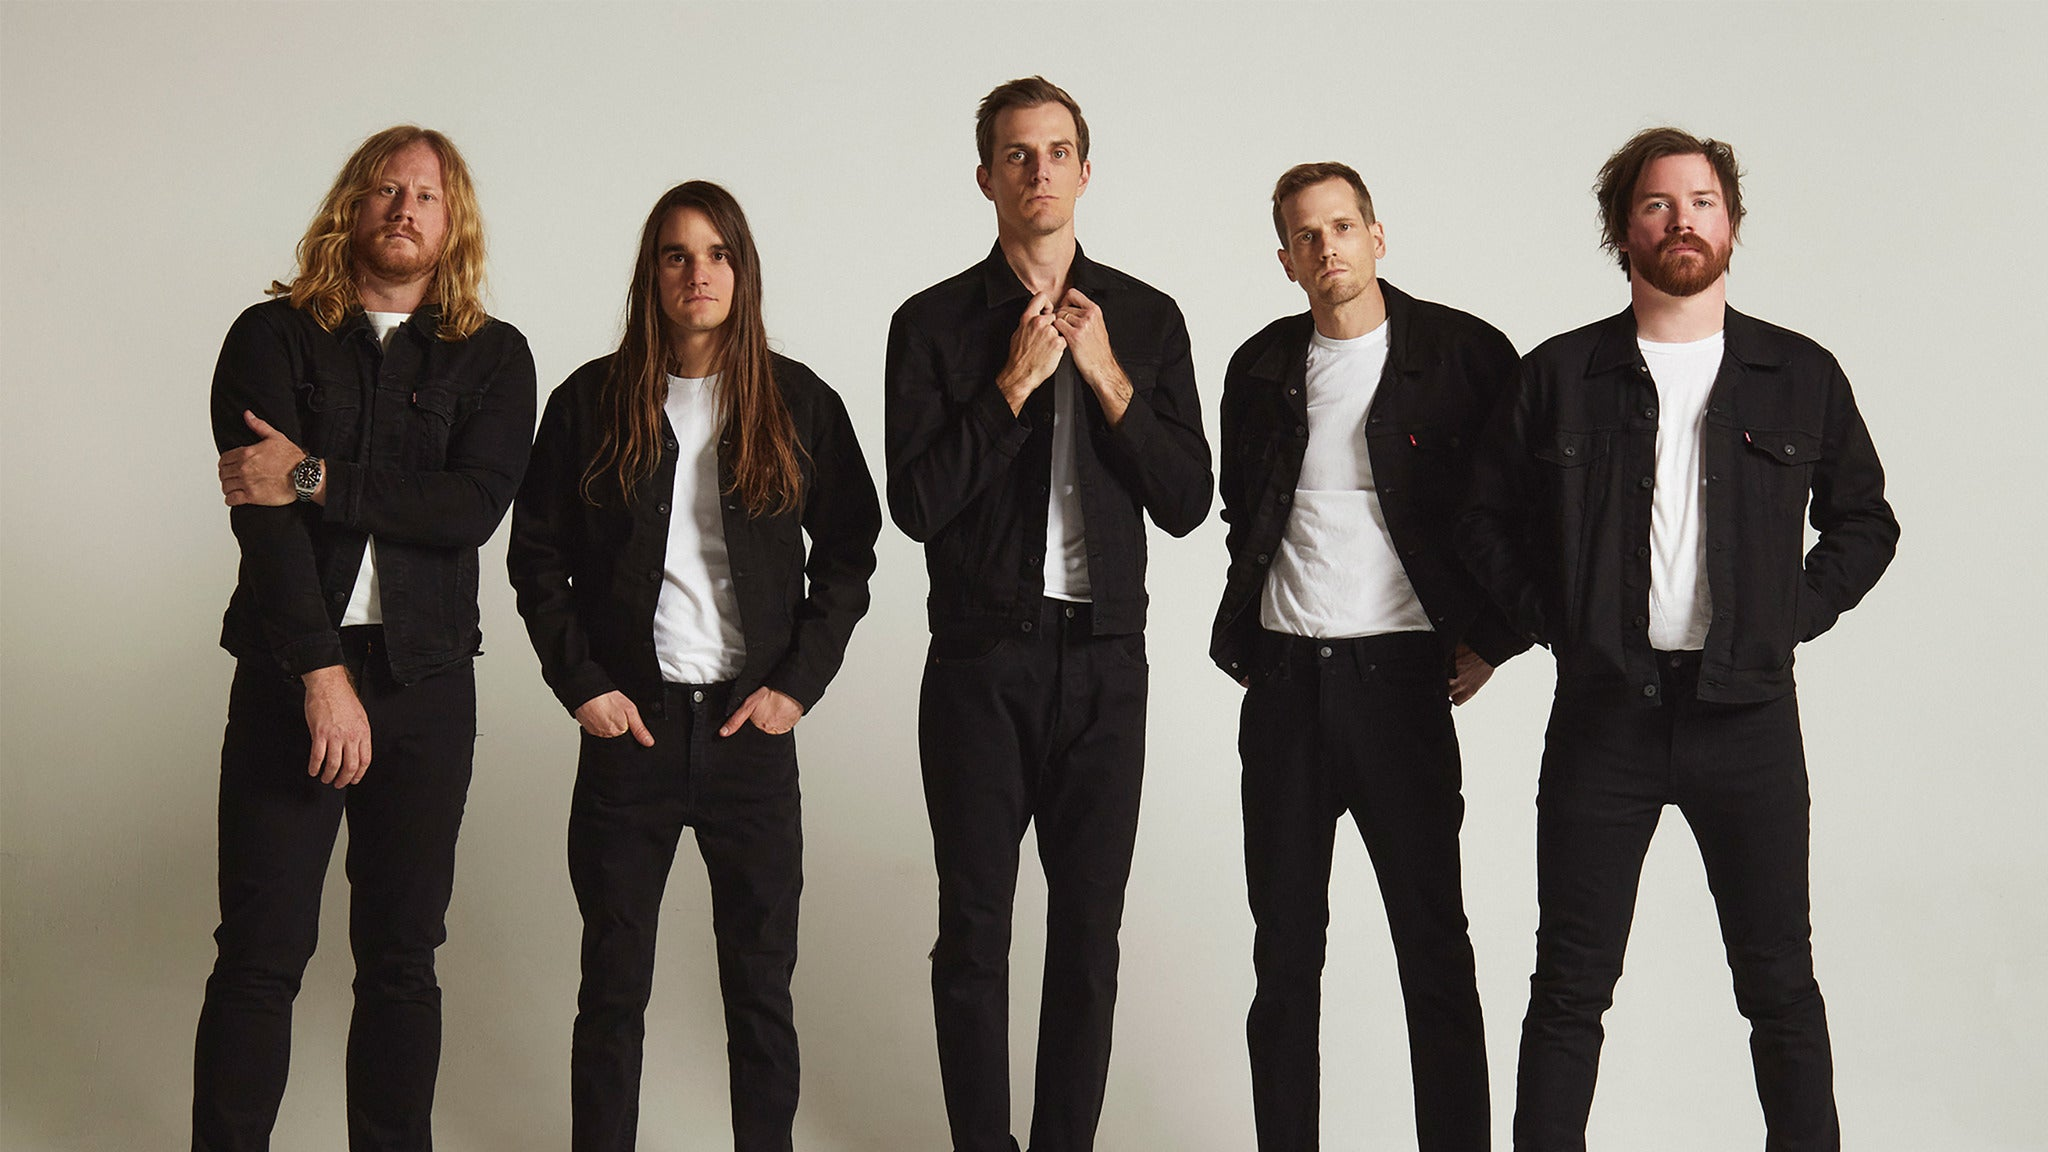 The Maine pre-sale password for performance tickets in Orlando, FL (House of Blues Orlando)